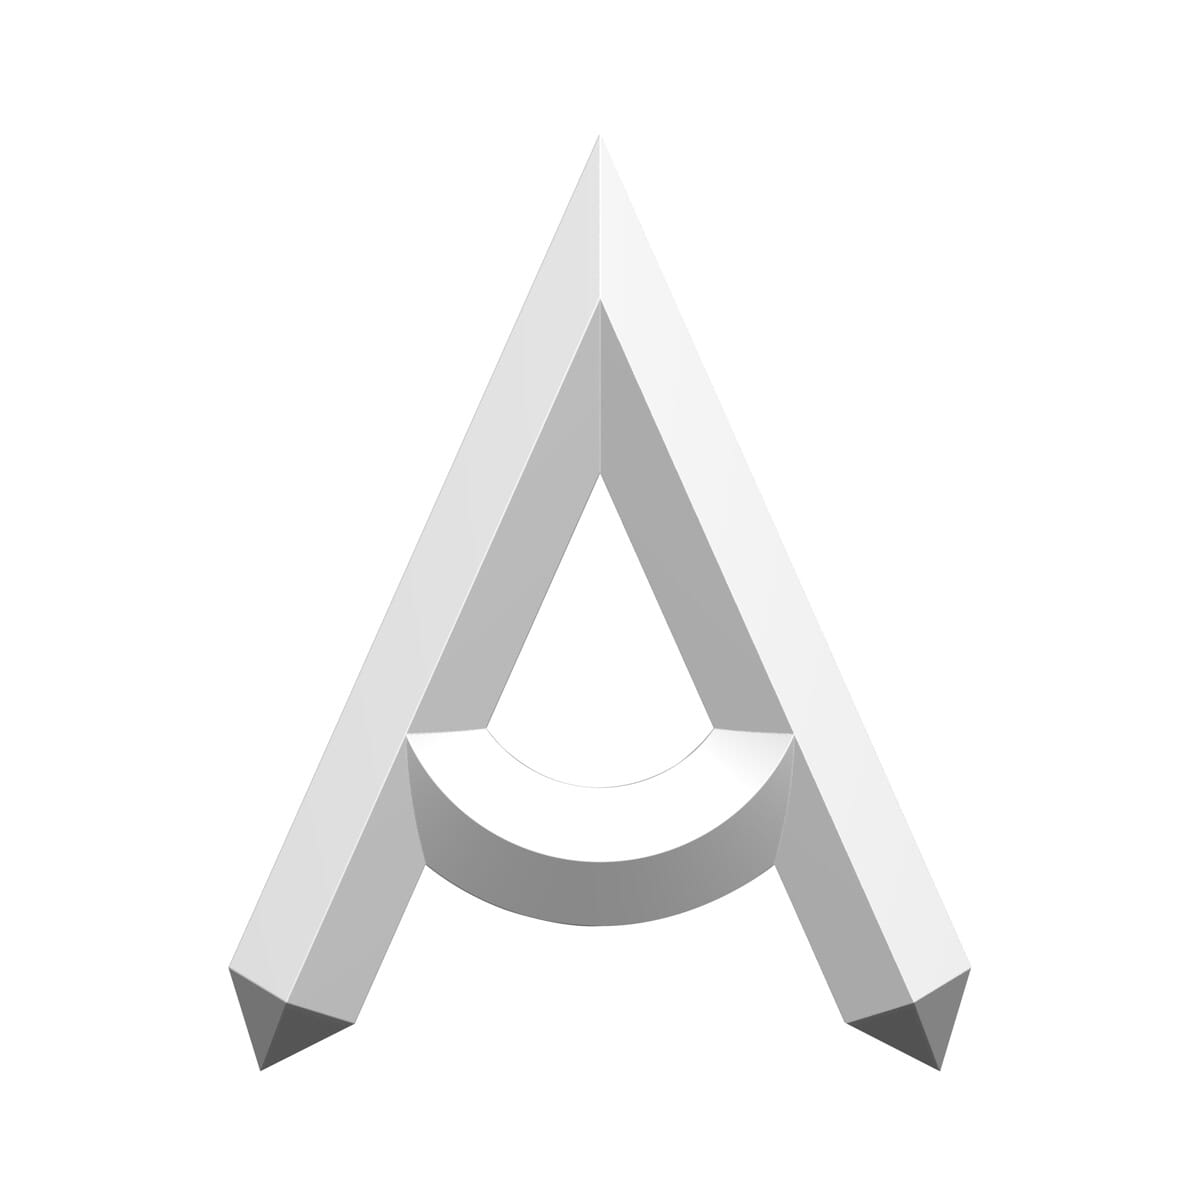 M5 x 12mm Full Thread Carriage Bolts (DIN 603) - Black A2 Stainless Steel